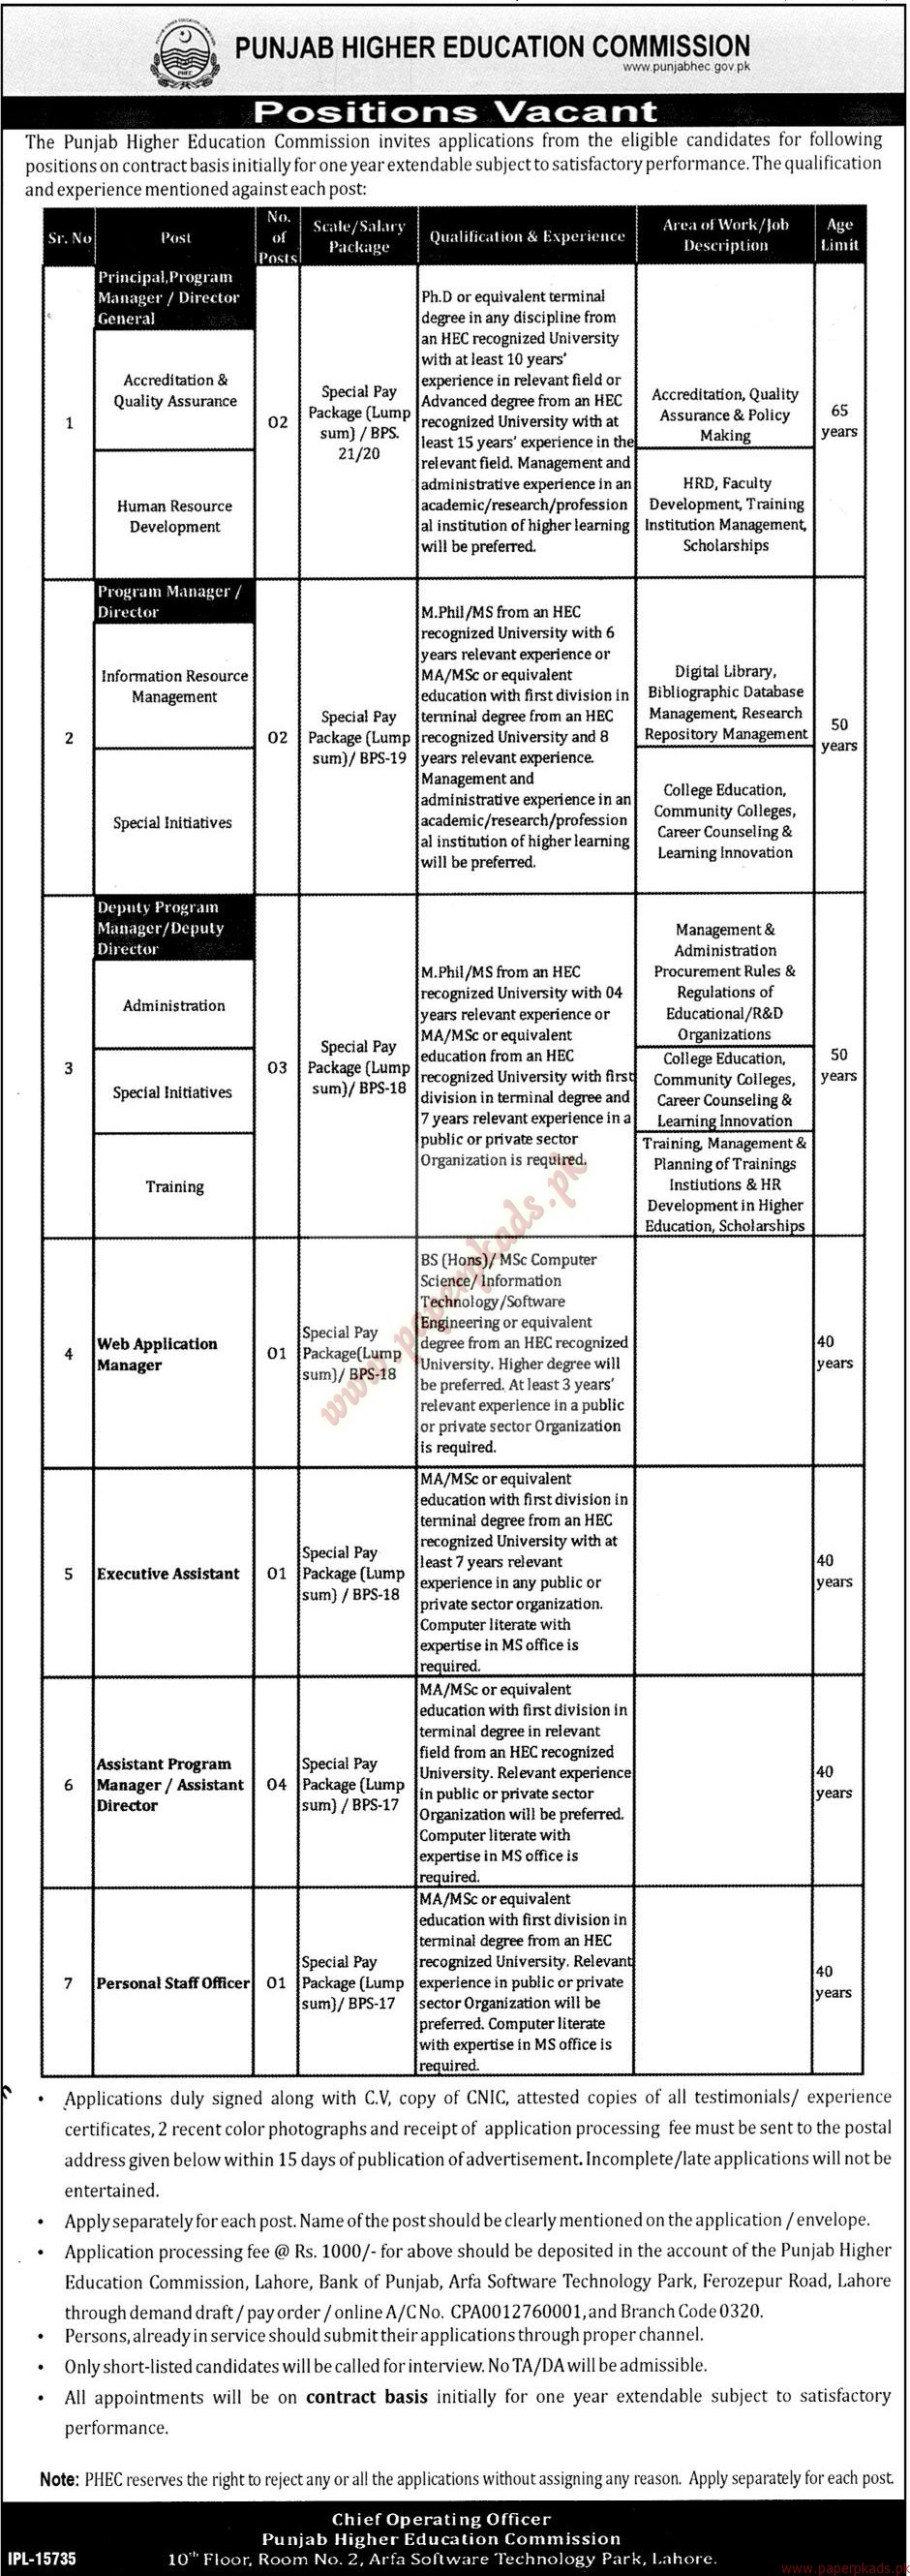 Punjab Higher Education Commission Jobs - Jang Jobs ads 01 January 2017